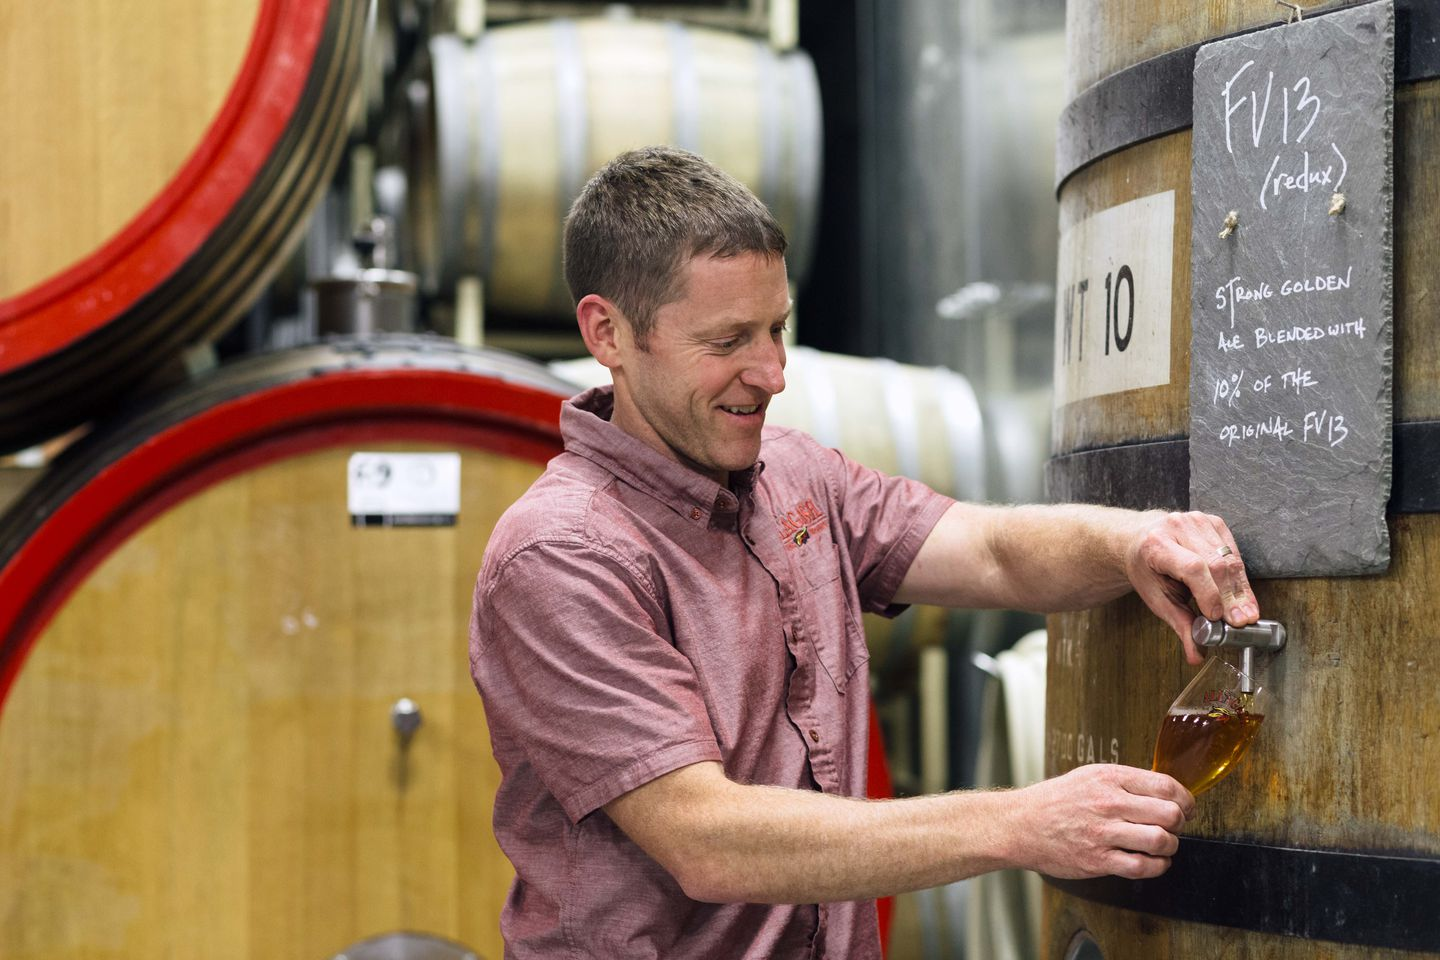 Brewmaster Jason Perkins hard at work with barrel-aged Belgian-style golden ale at Allagash Brewing Company.